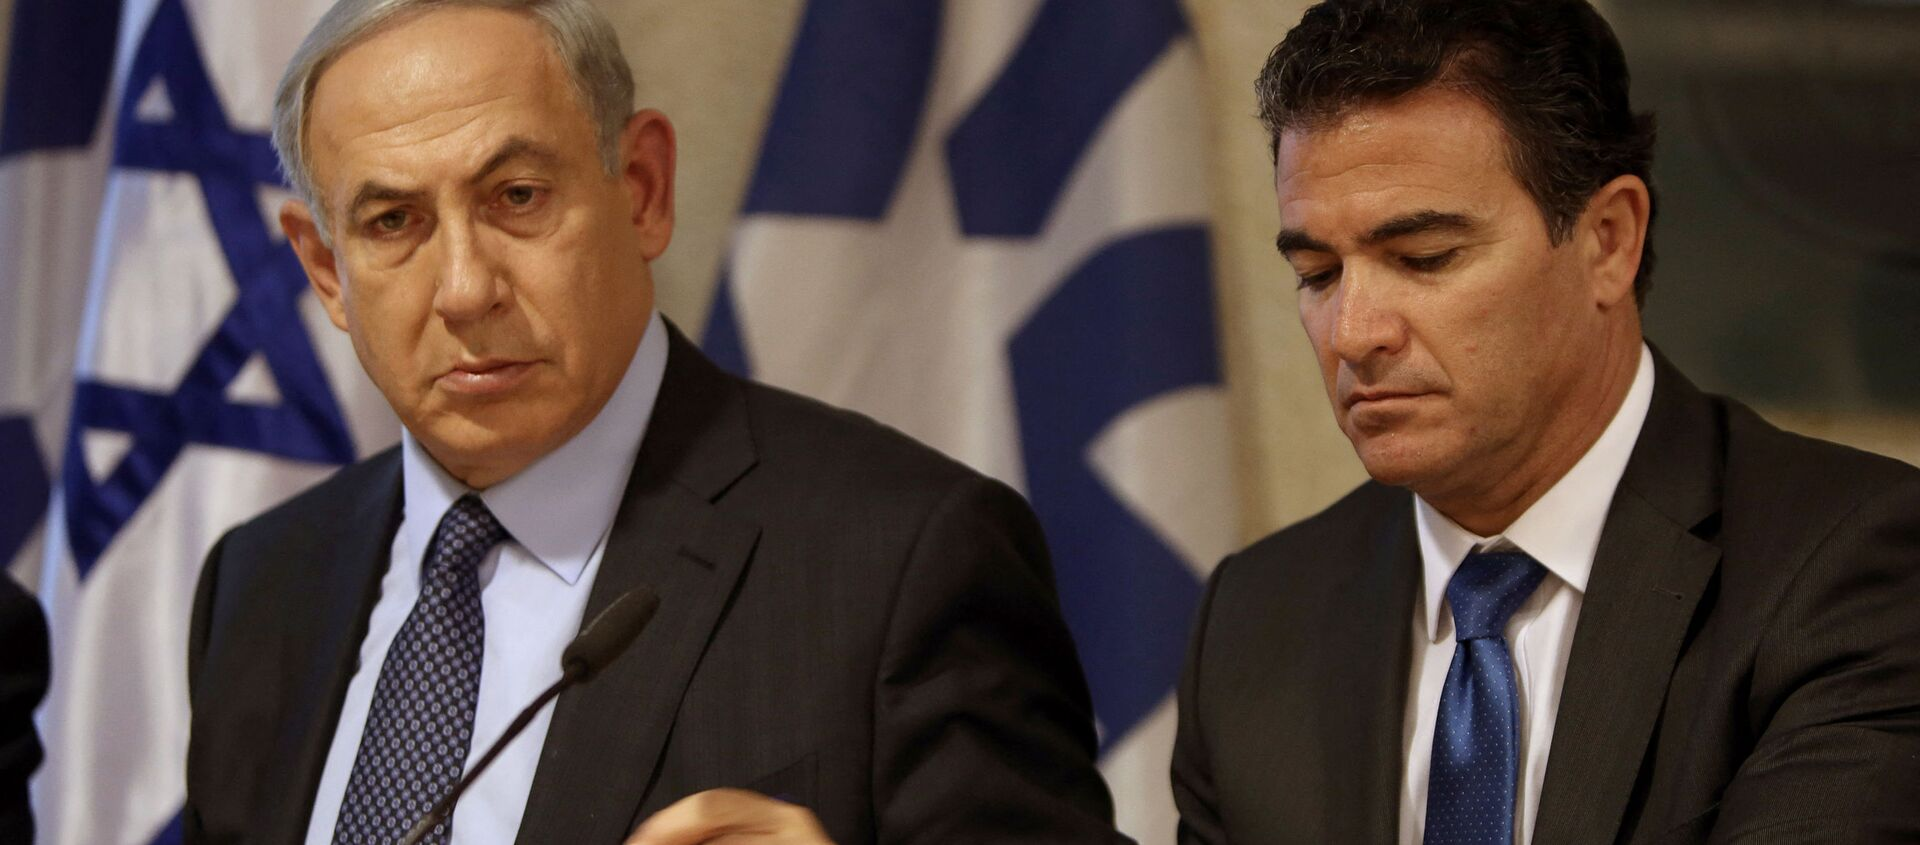 A file picture taken at the Israeli foreign ministry on October 15, 2015, shows Prime Minister Benjamin Netanyahu (L) sitting next to Yossi Cohen, who is currently the head of Israel's National Security Council, and who was named as the 12th head of the Mossad intelligence agency by Netanyahu on December 7, 2015. - Sputnik International, 1920, 12.06.2021